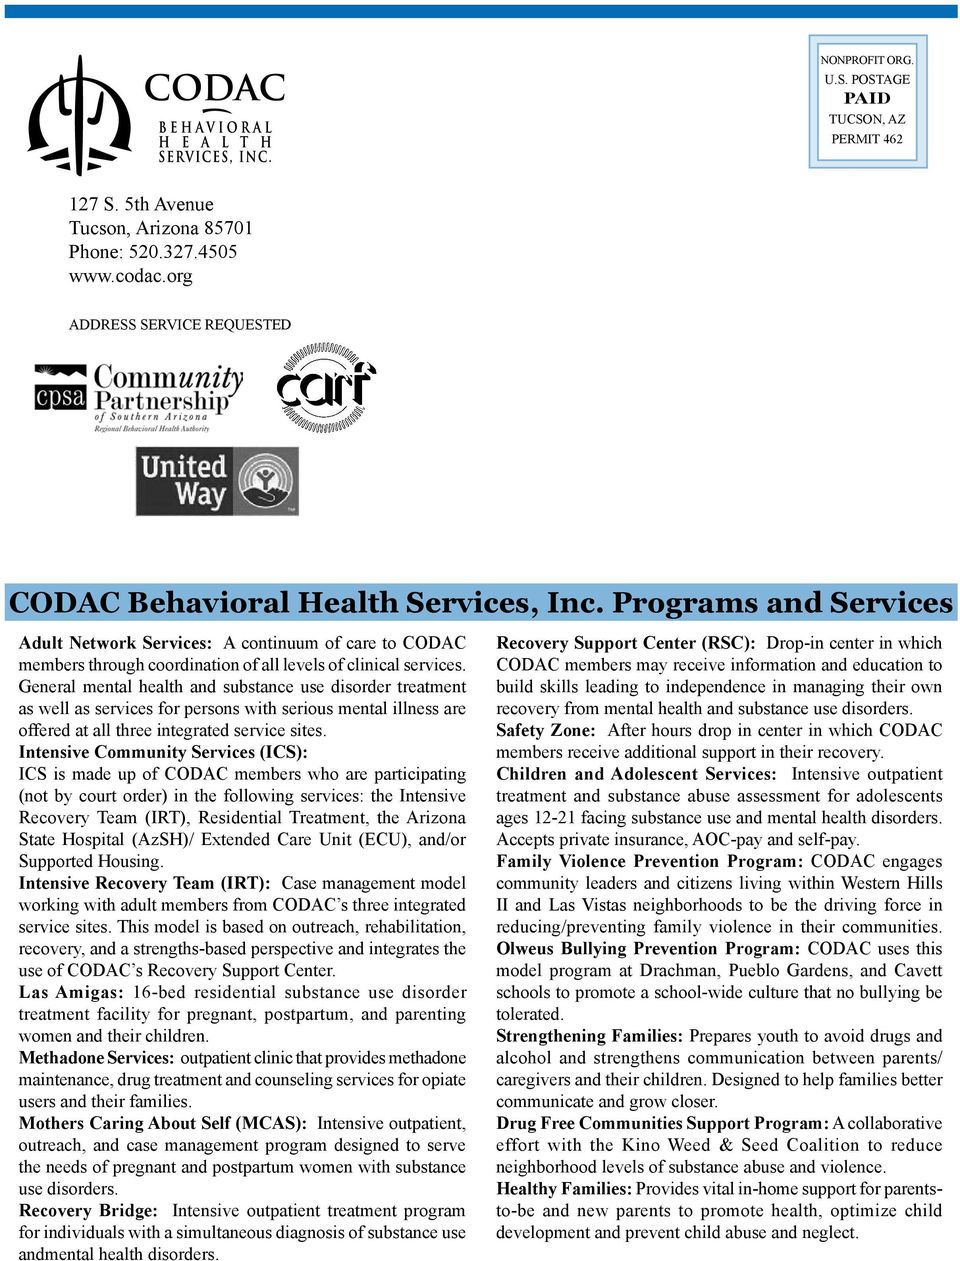 General mental health and substance use disorder treatment as well as services for persons with serious mental illness are offered at all three integrated service sites.